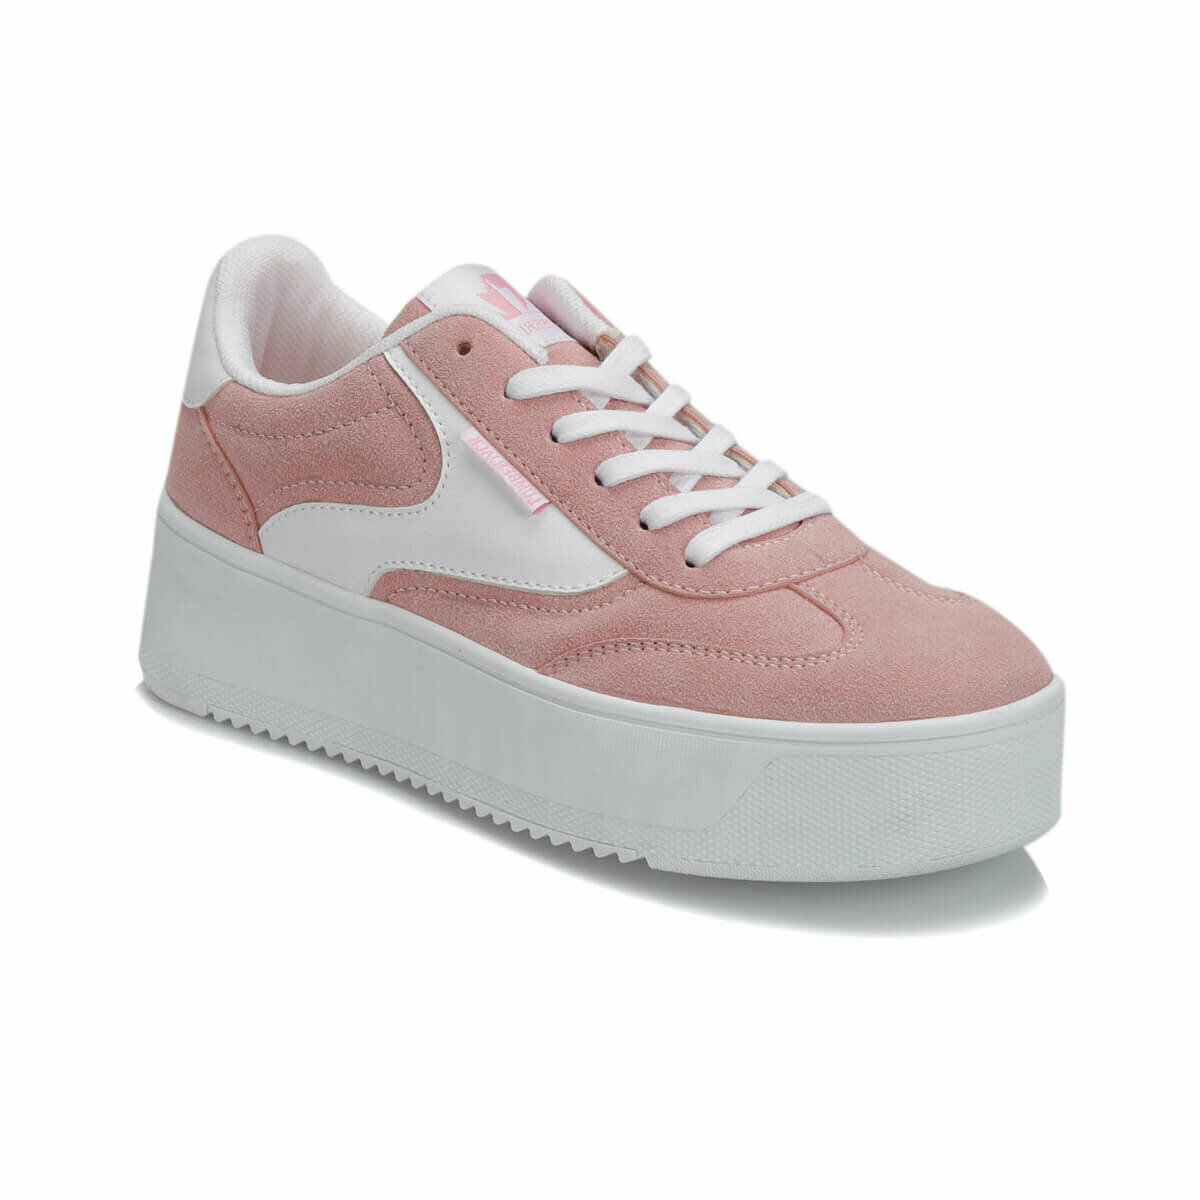 FLO HOPE Light Pink Women 'S Sneaker Shoes LUMBERJACK